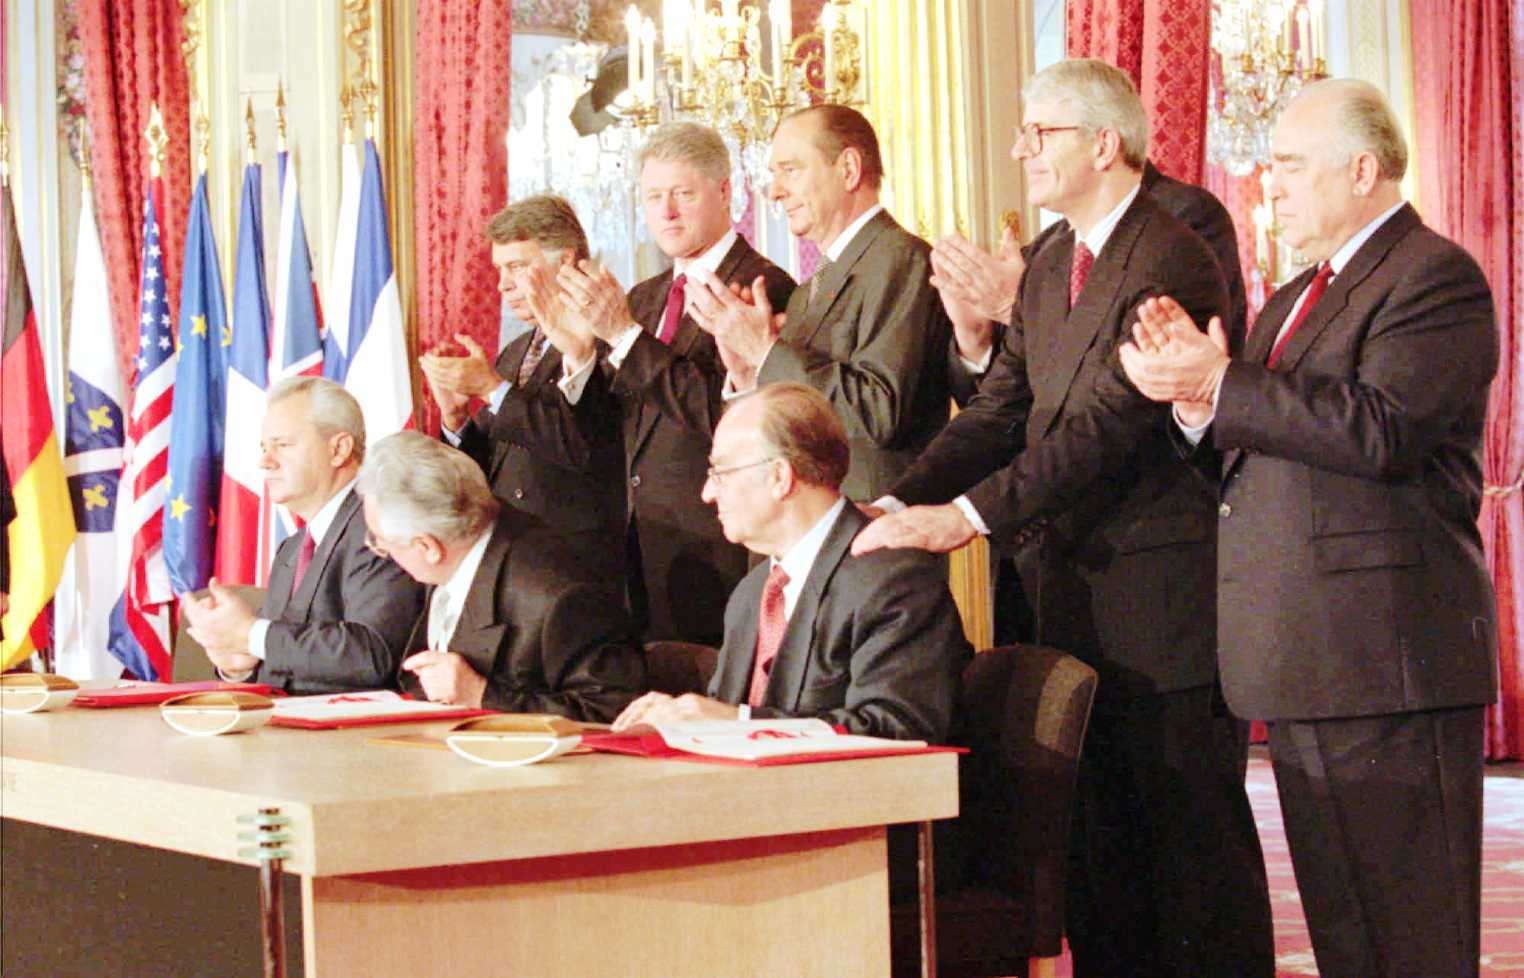 World leaders, from left, standing, Spanish Premier Felipe Gonzales, President Clinton, French President Jacques Chirac, German Chancellor Helmut Kohl, (hidden), British Premier John Major and Russian Premier Viktor Chernomyrdin, applaud the signing of the treaty to bring peace in the Balkans at the Elysee Palace, Paris, Thursday Dec. 14, 1995. Seated from left signing are Balkan leaders President Slobodan Milosevic, Serbia; Franjo Tudjman, Croatia and Alija Izetbegovic of Bosnia. (AP Photo/Jerome Delay,pool)